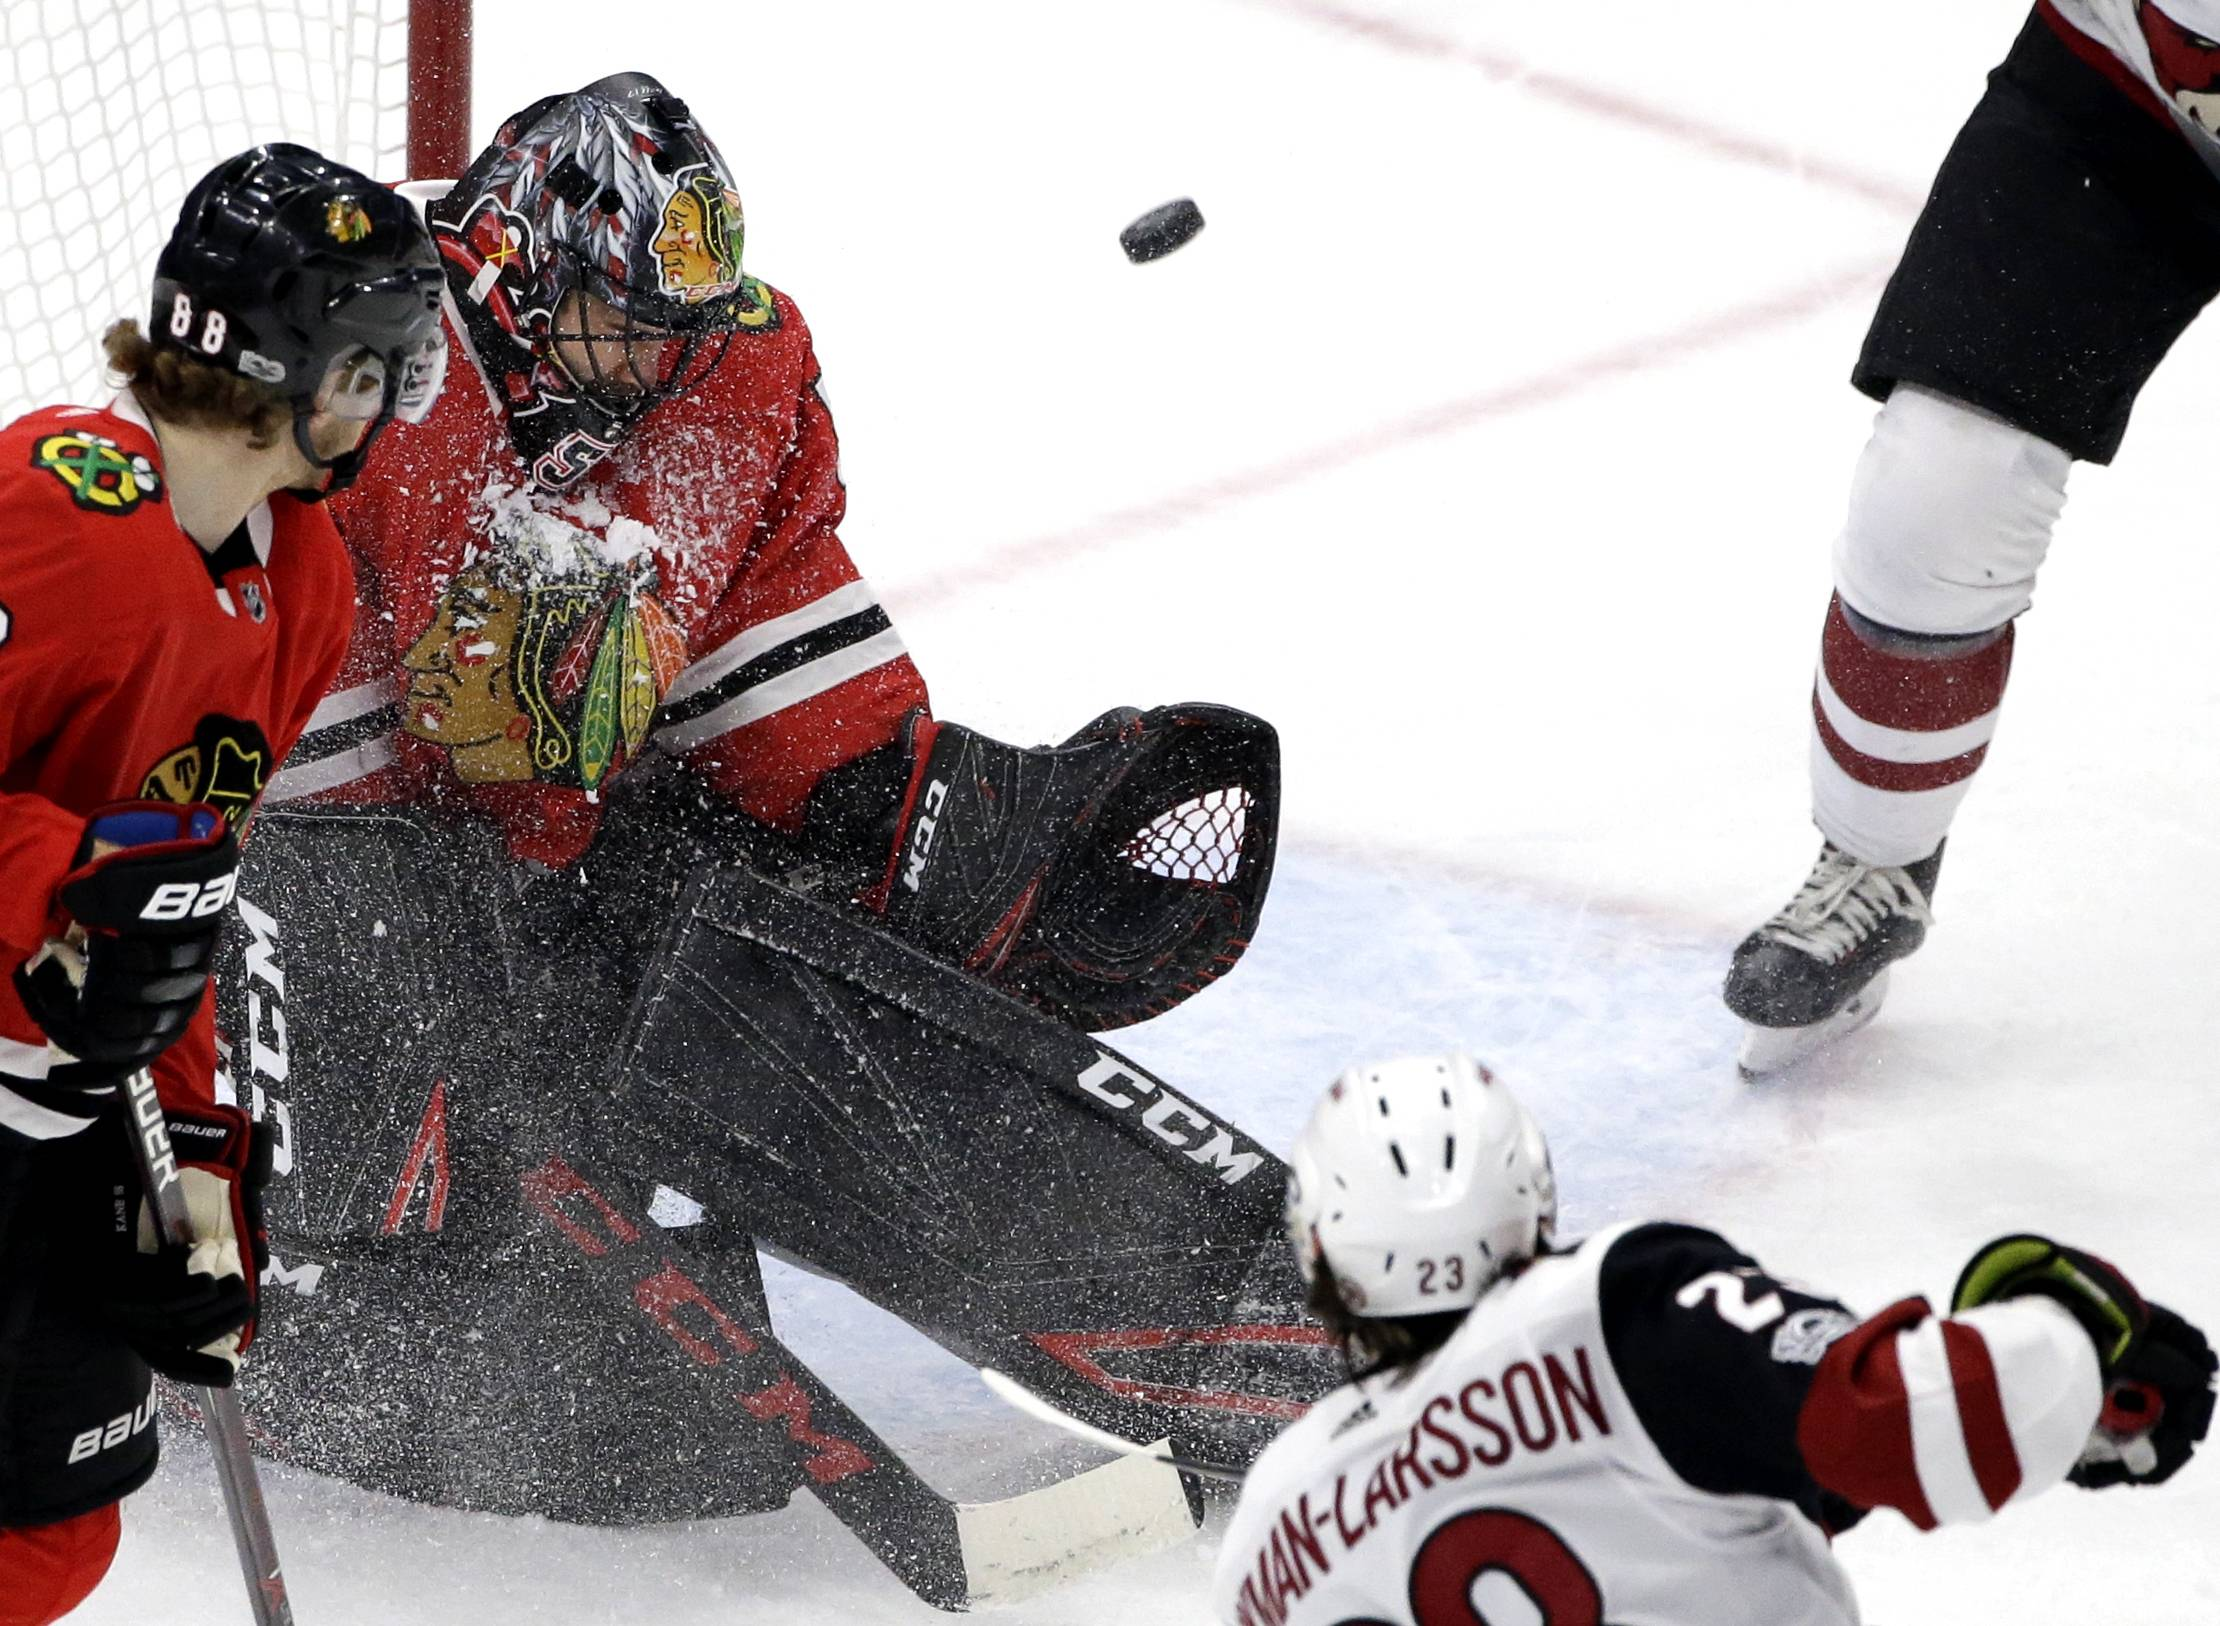 Chicago Blackhawks goalie Corey Crawford, second from left, blocks a shot by Arizona Coyotes defenseman Oliver Ekman-Larsson, lower right, during the second period of an NHL hockey game Sunday, Dec. 10, 2017, in Chicago. (AP Photo/Nam Y. Huh)